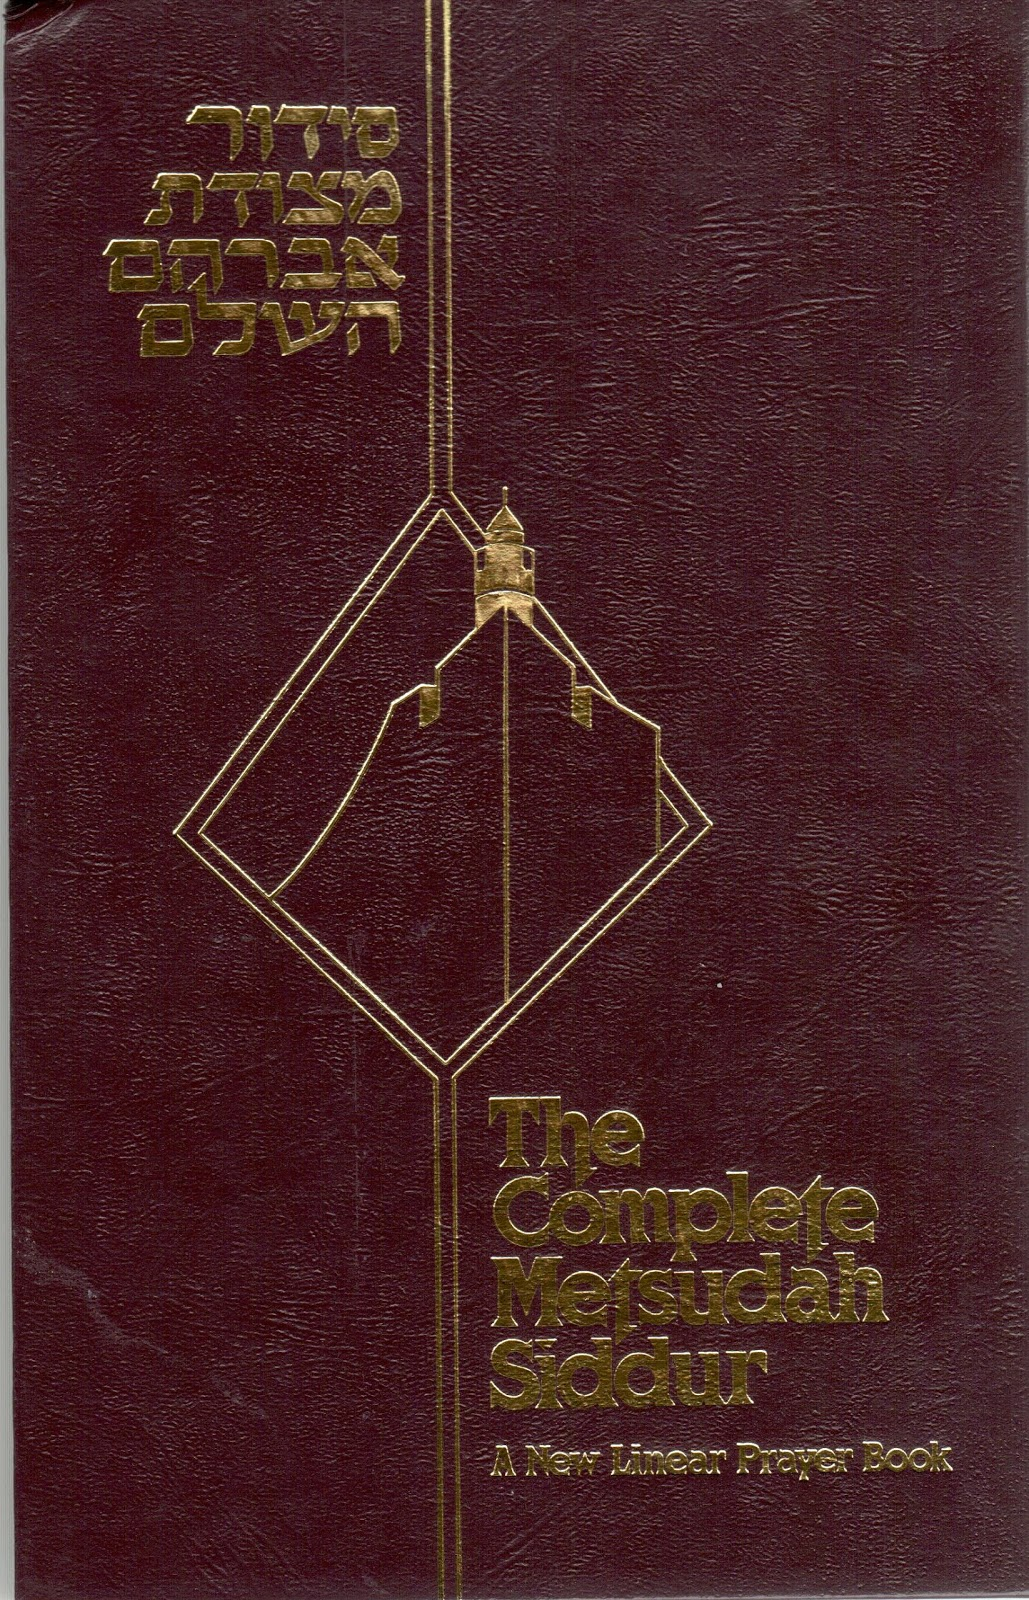 Book Review -- The Complete Metsudah Siddur | rwhitesf